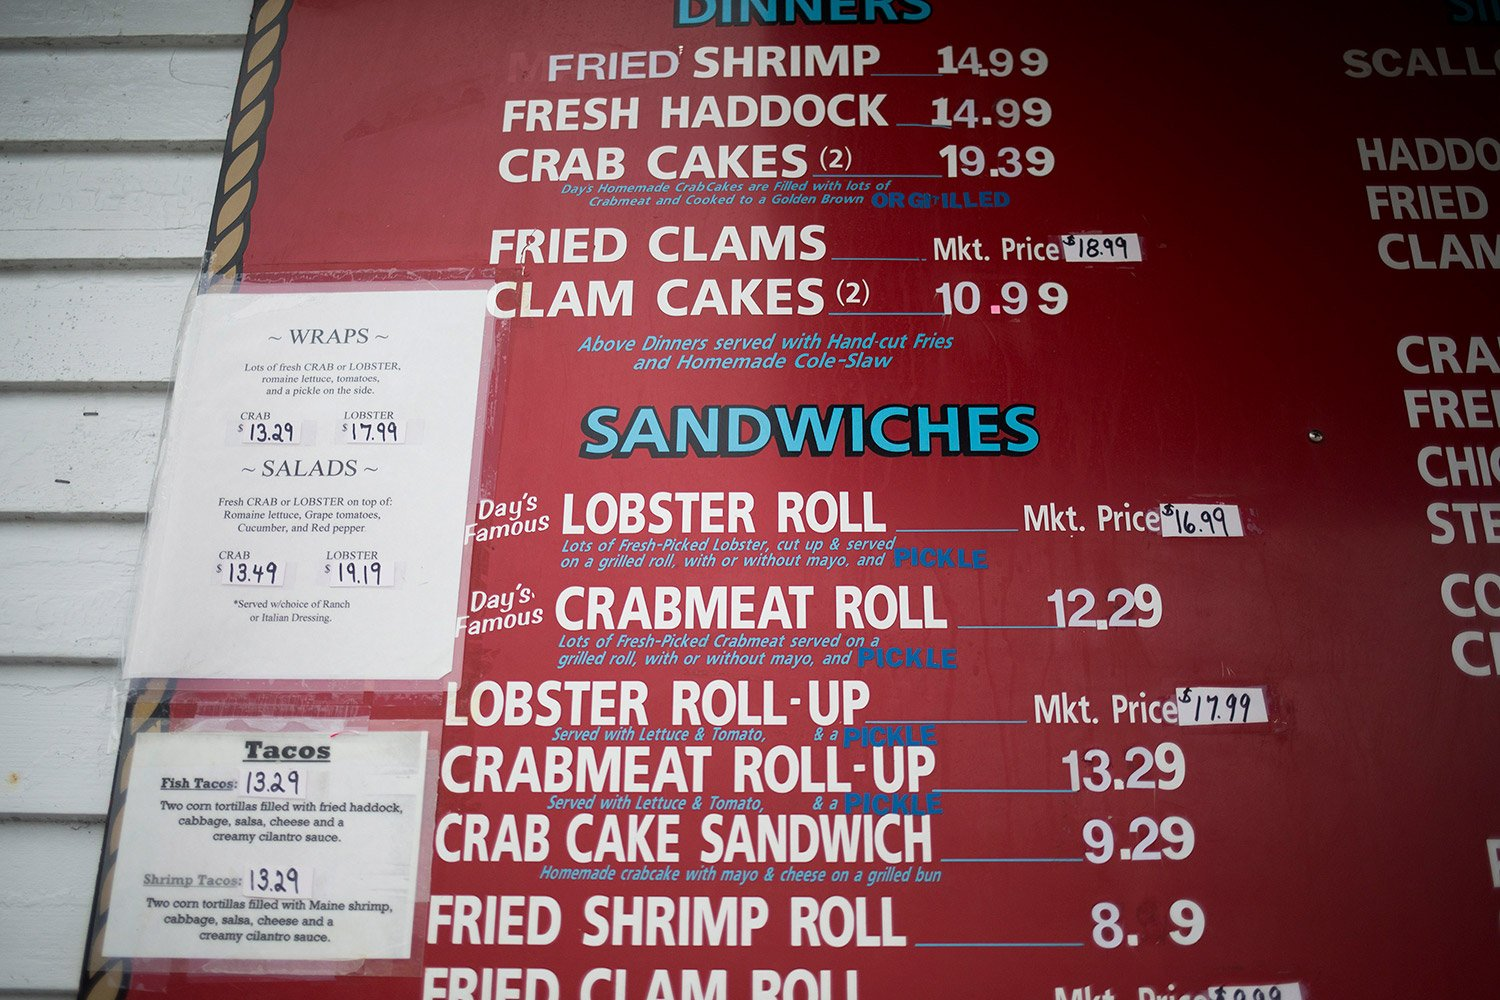 The menu at day s crabmeat lobster in yarmouth on thursday shows its record price of 16 99 for a lobster roll sandy owens the owner expects the price